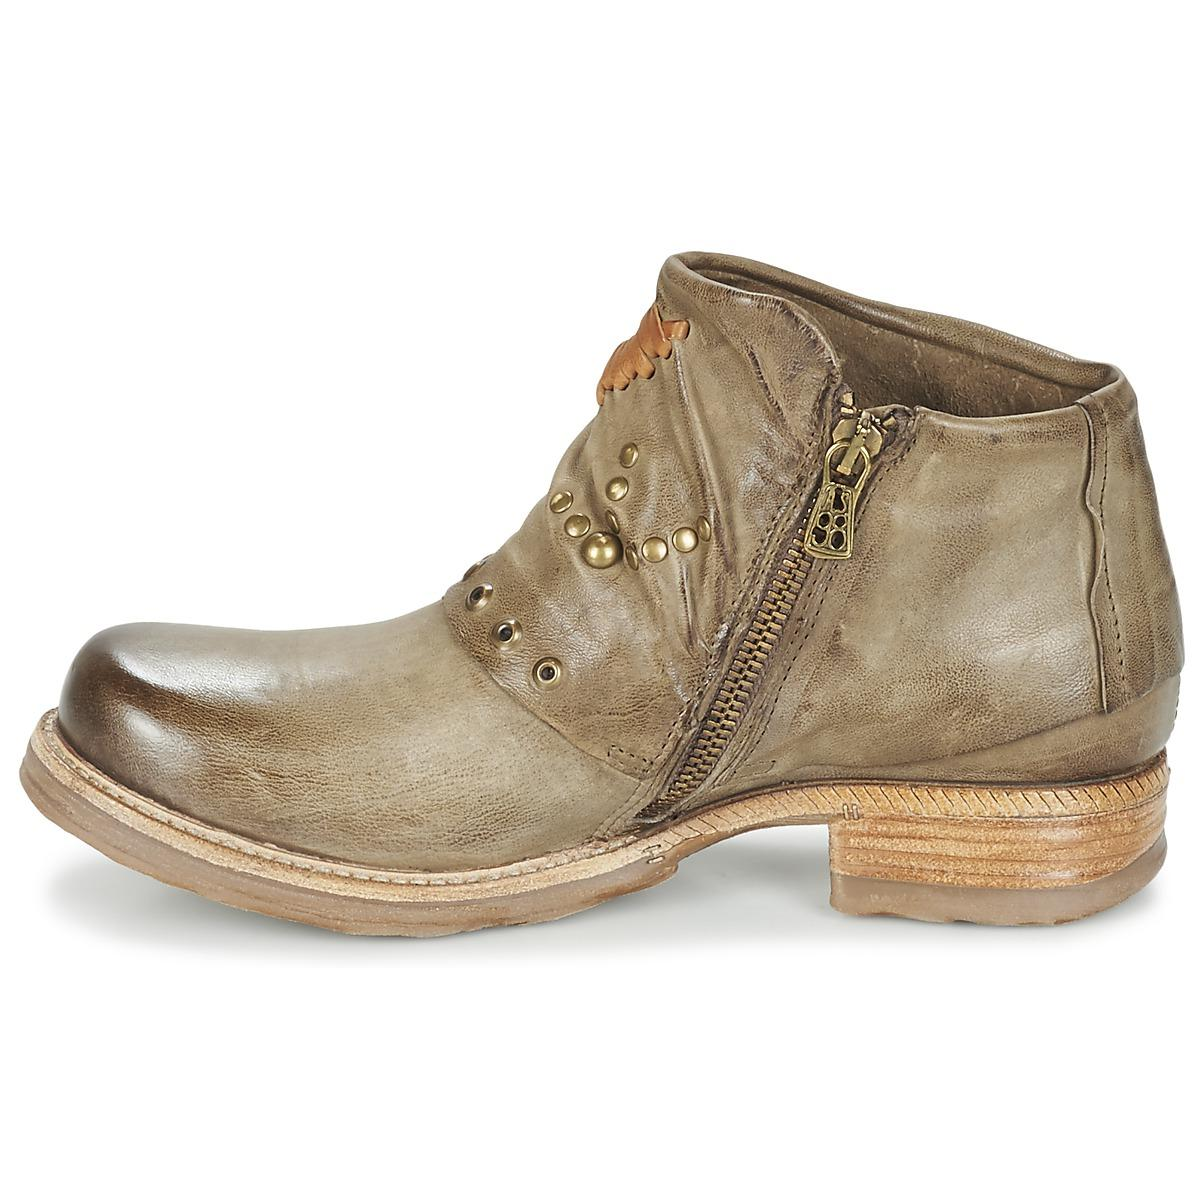 A.s.98 Leather Saint Mid Boots in Green